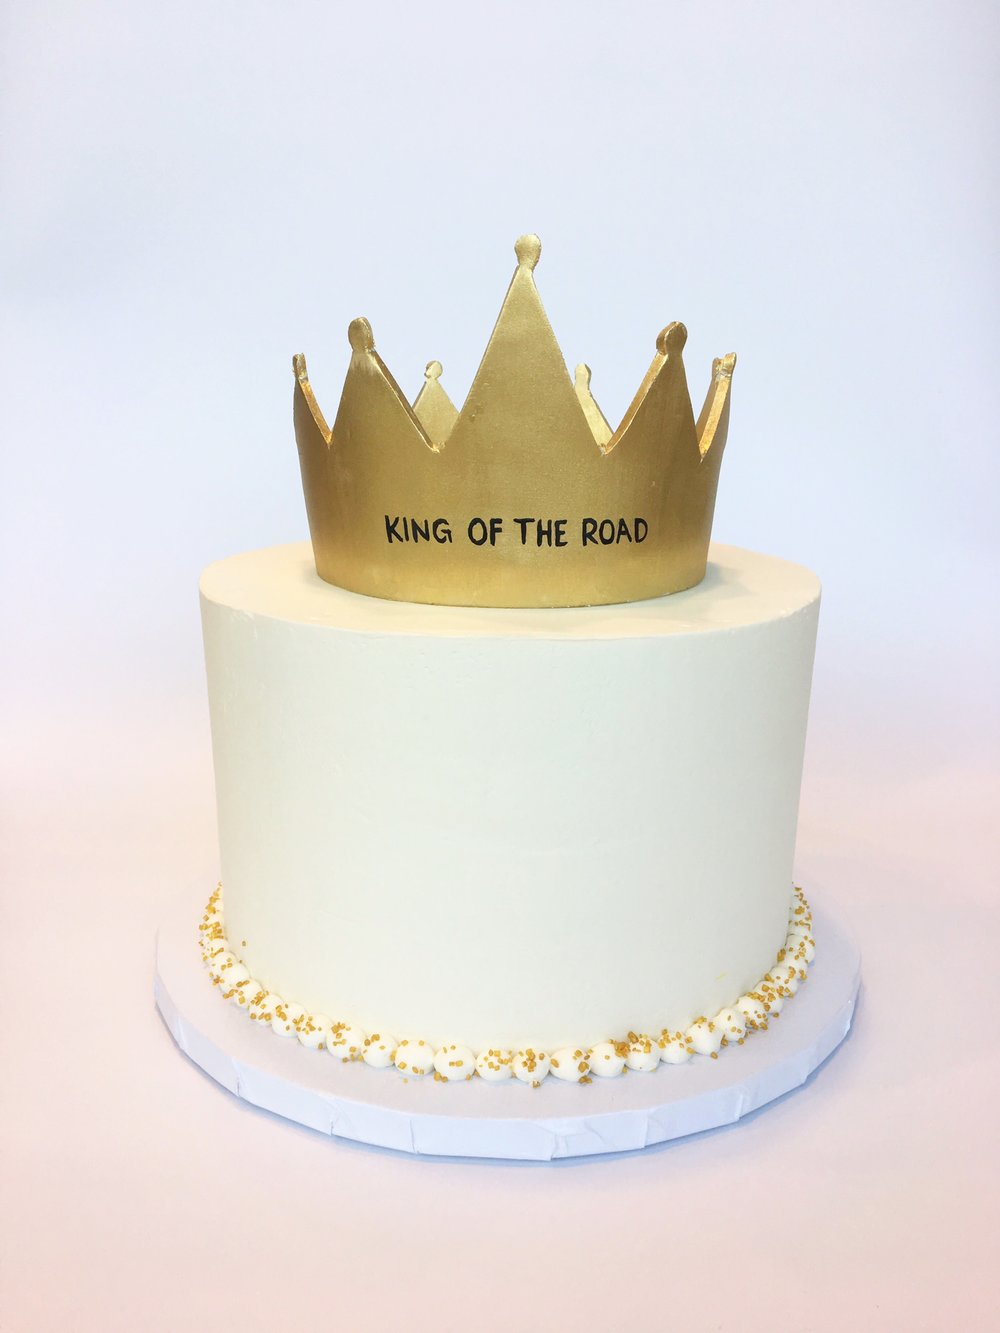 King of the road cake.jpg